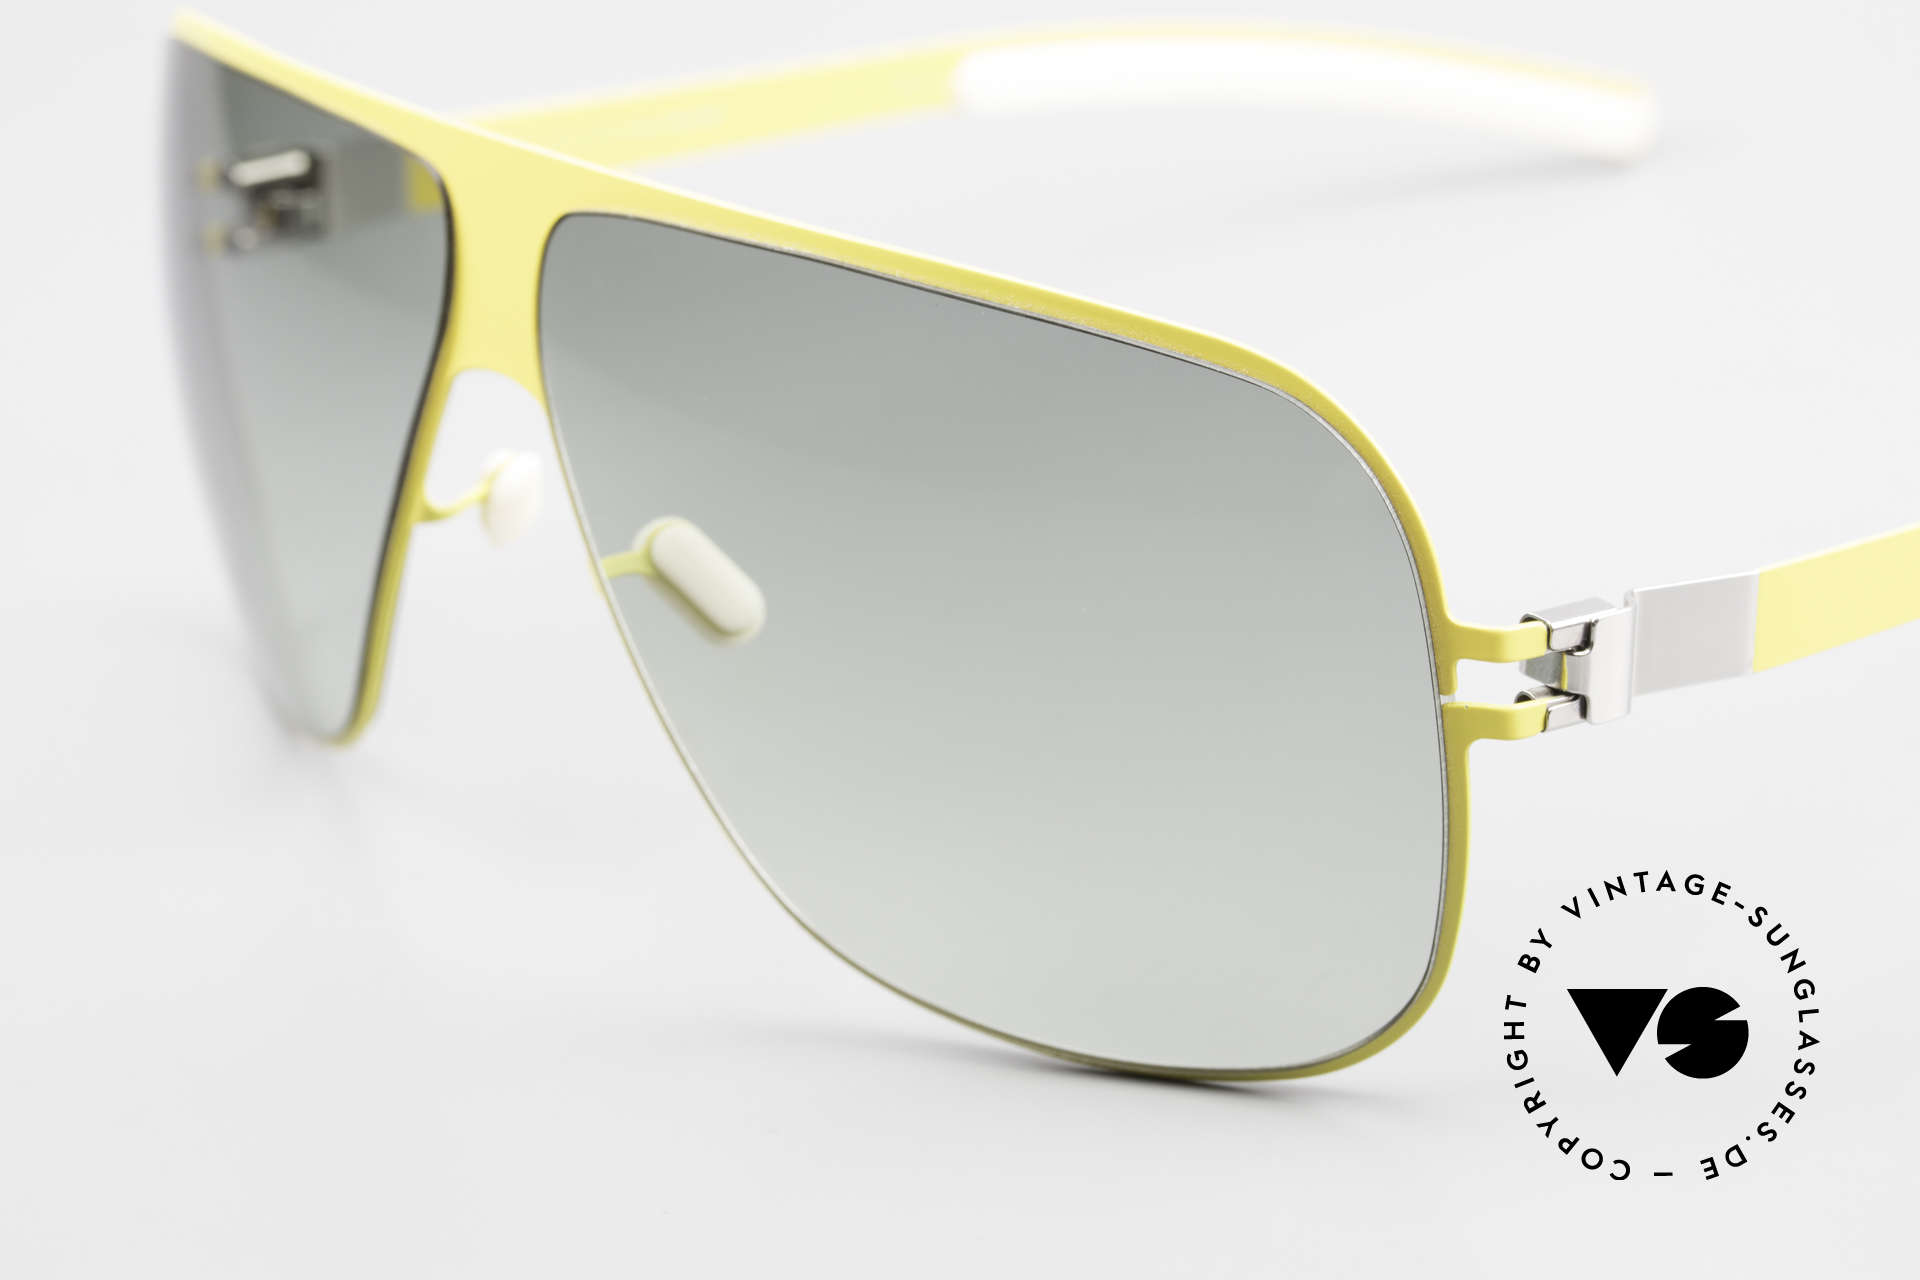 Mykita Hector Aviator Mykita Shades 2009's, worn by many celebs (rare & in high demand, meanwhile), Made for Men